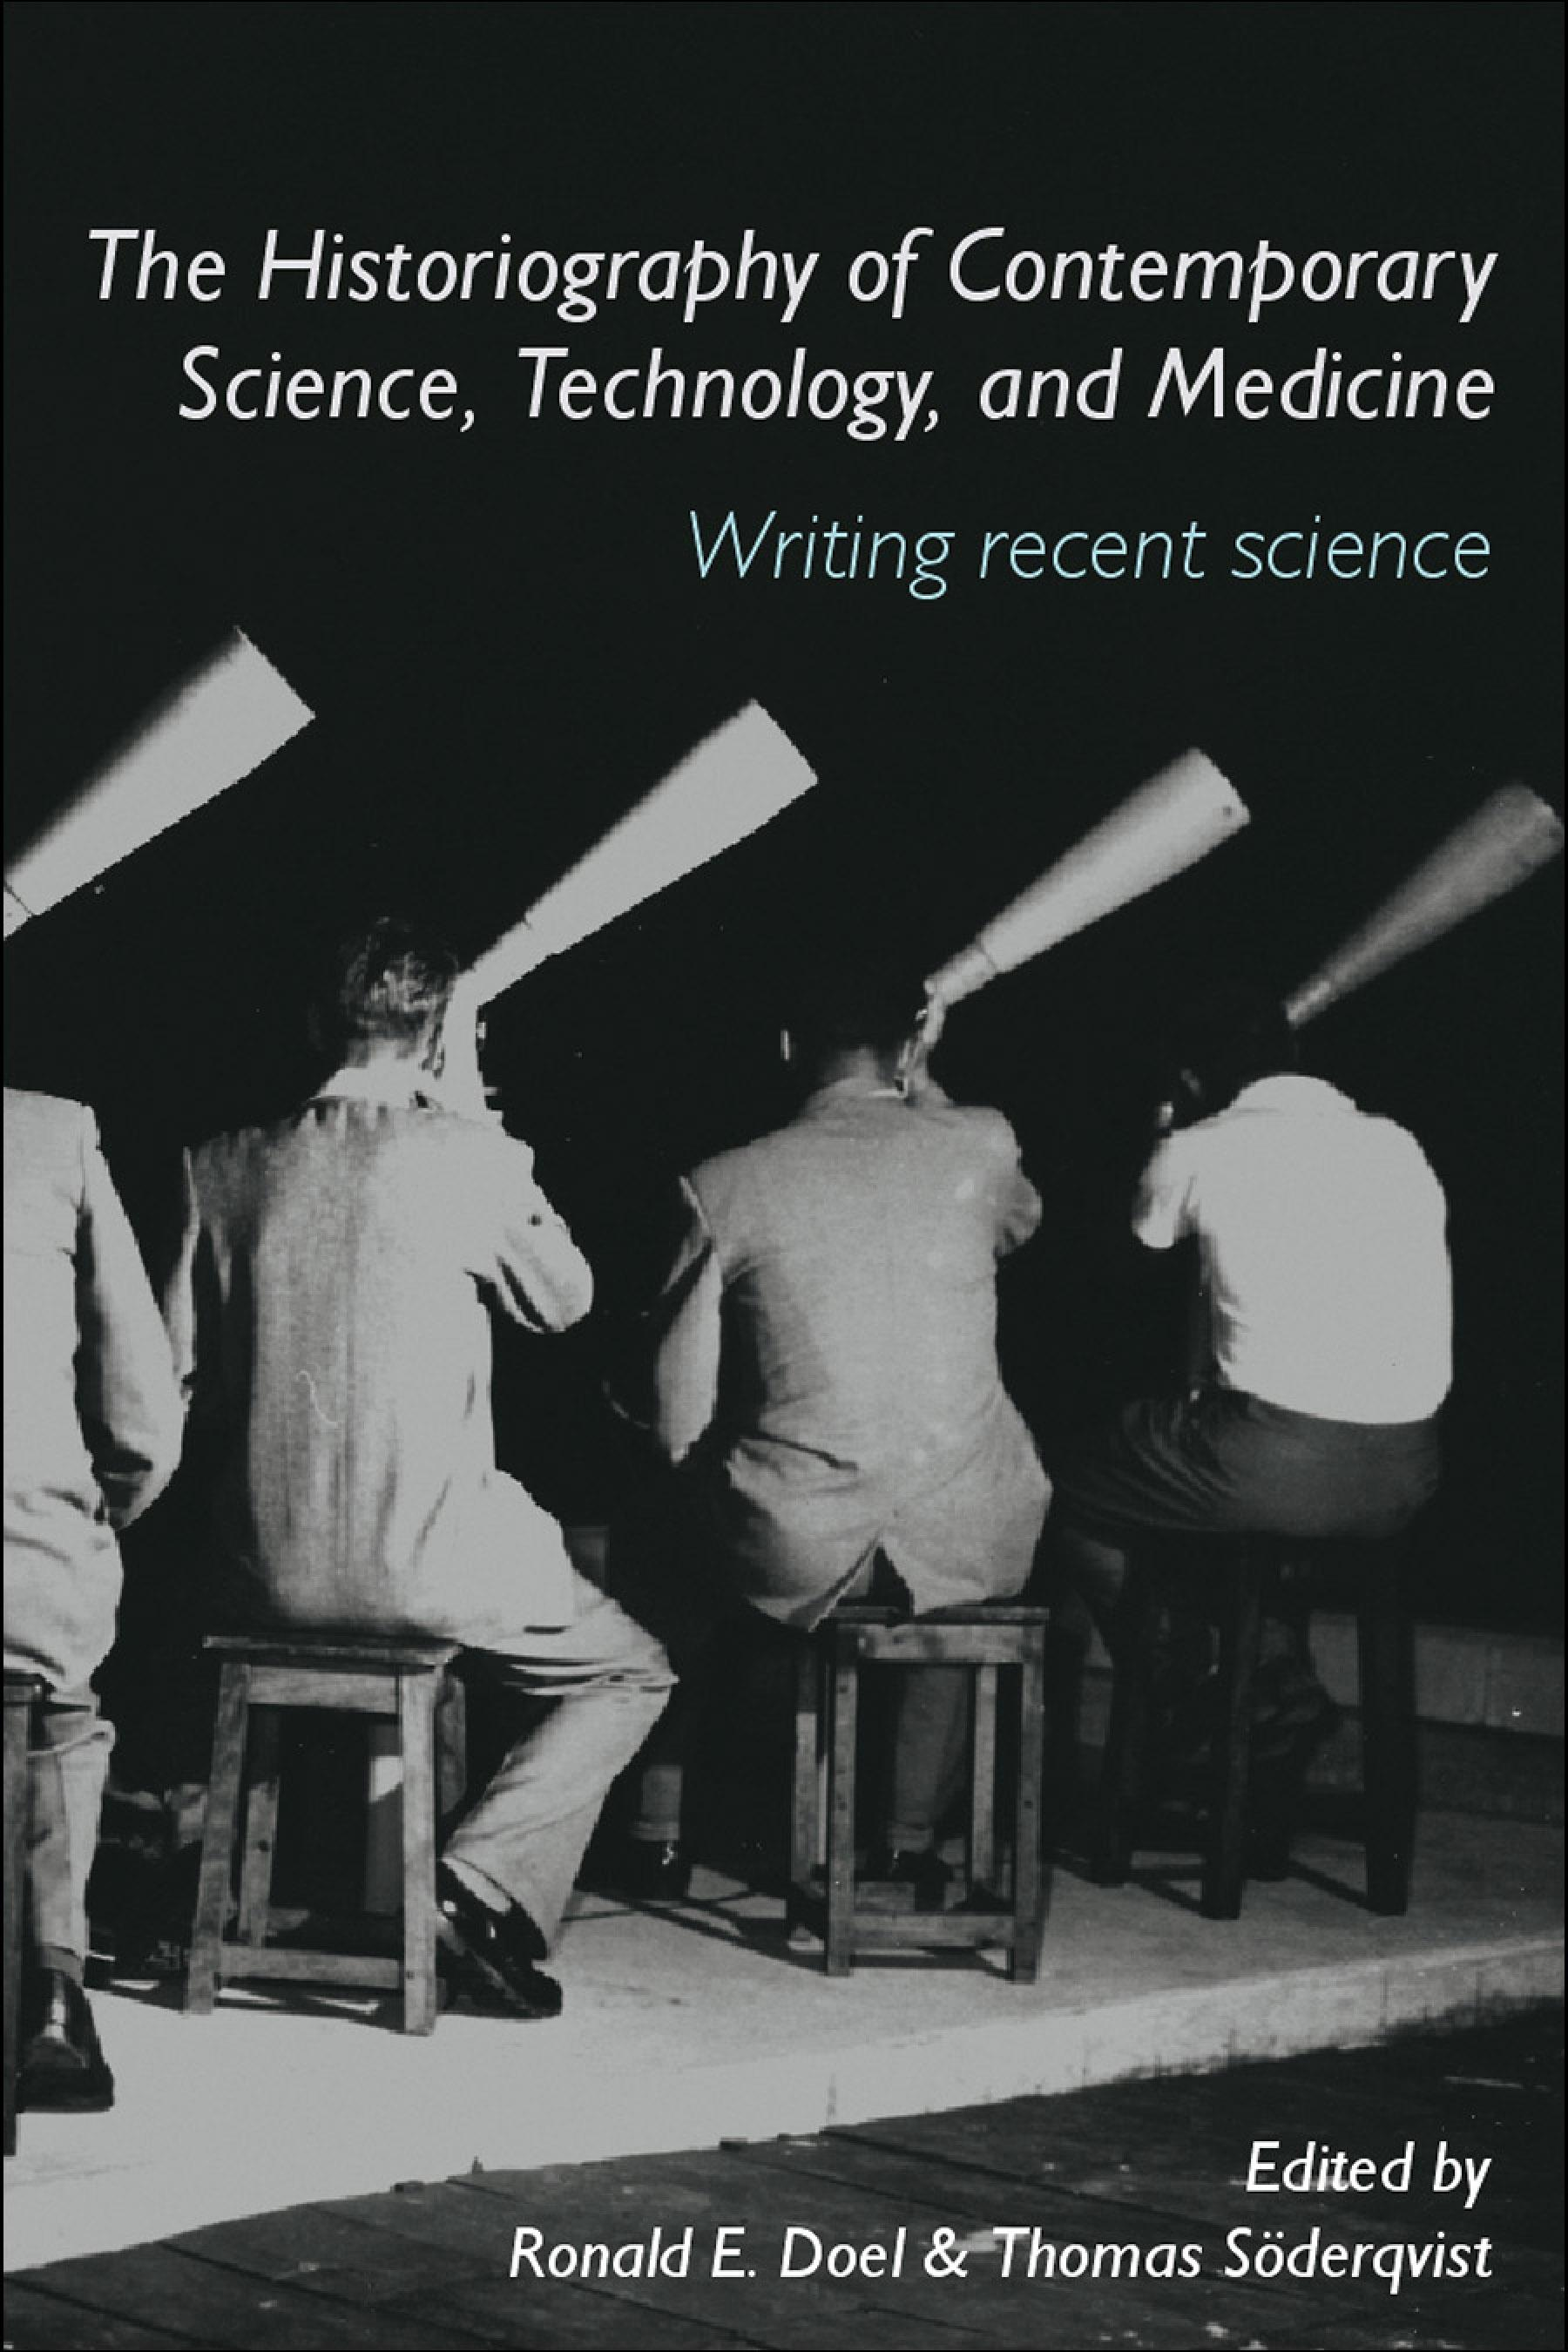 The Historiography of Contemporary Science, Technology, and Medicine